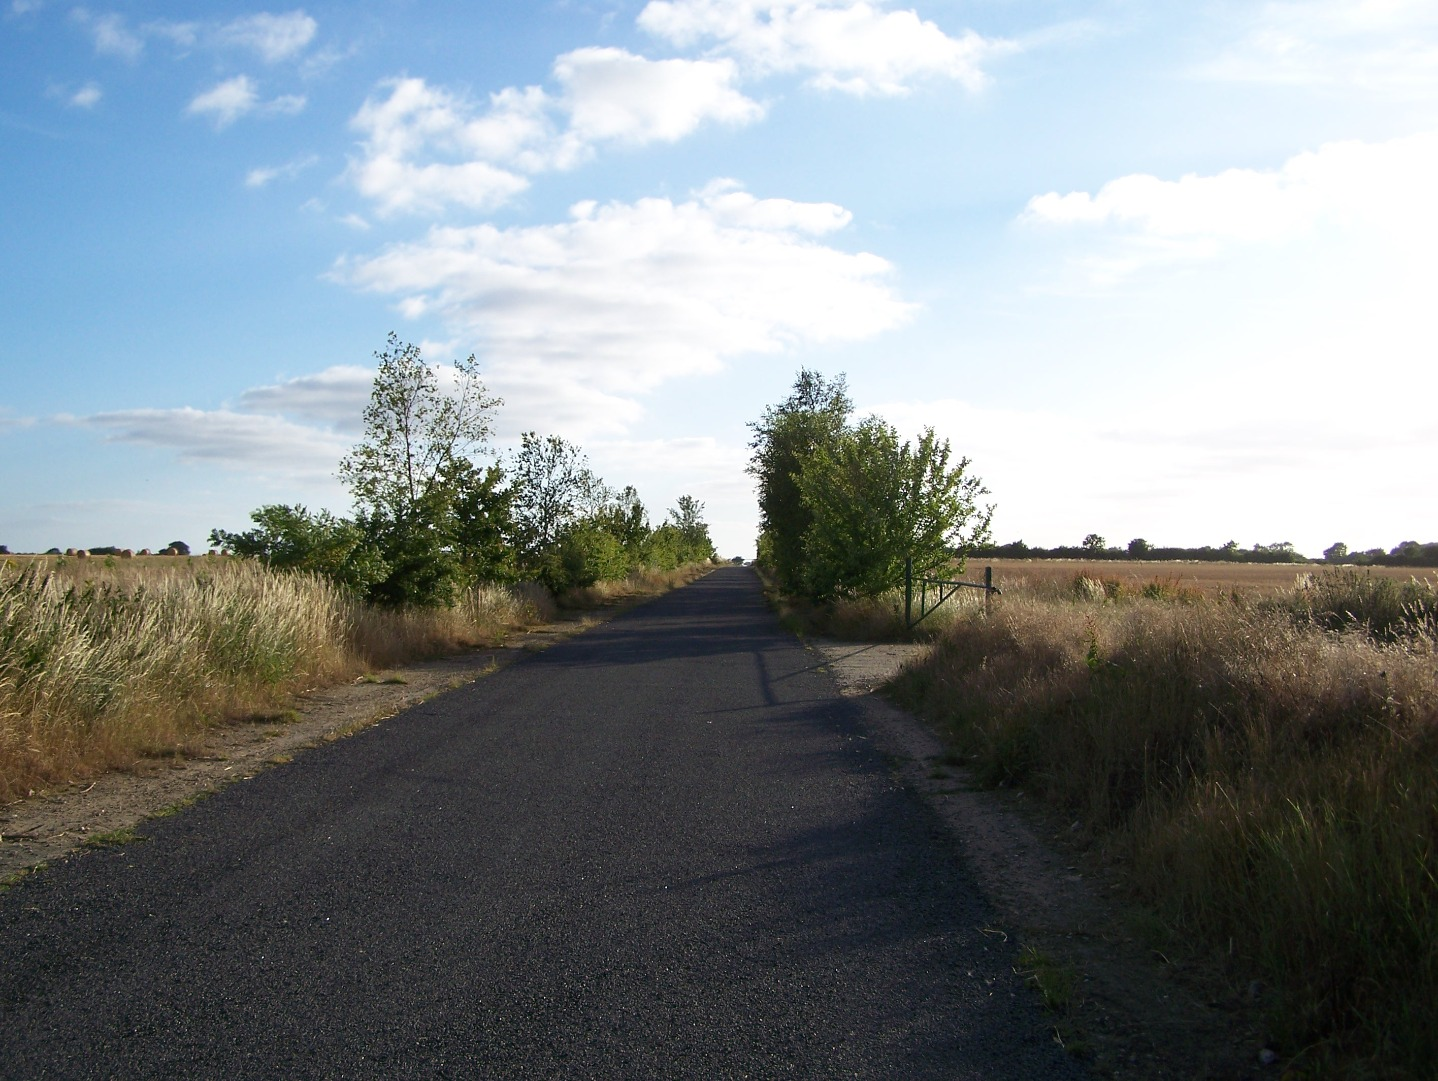 Middle section of 08:26 runway, currently a minor road, looking north-east 14:07:2006.JPG